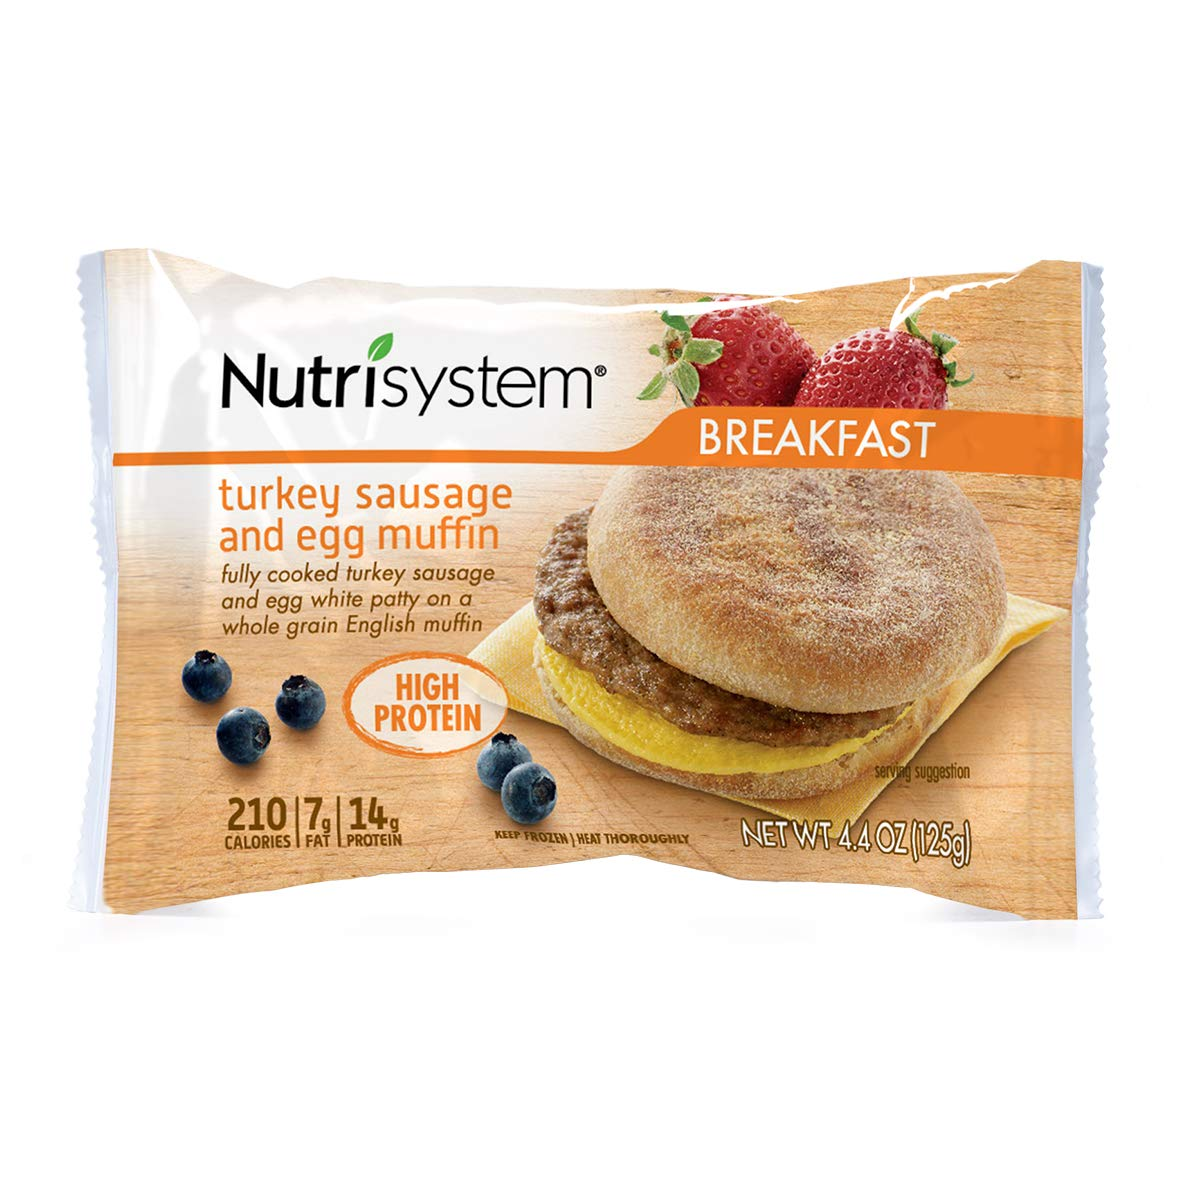 Nutrisystem® Turkey Sausage and Egg Muffins, 22ct. Frozen Breakfast Sandwiches to Support Healthy Weight Loss